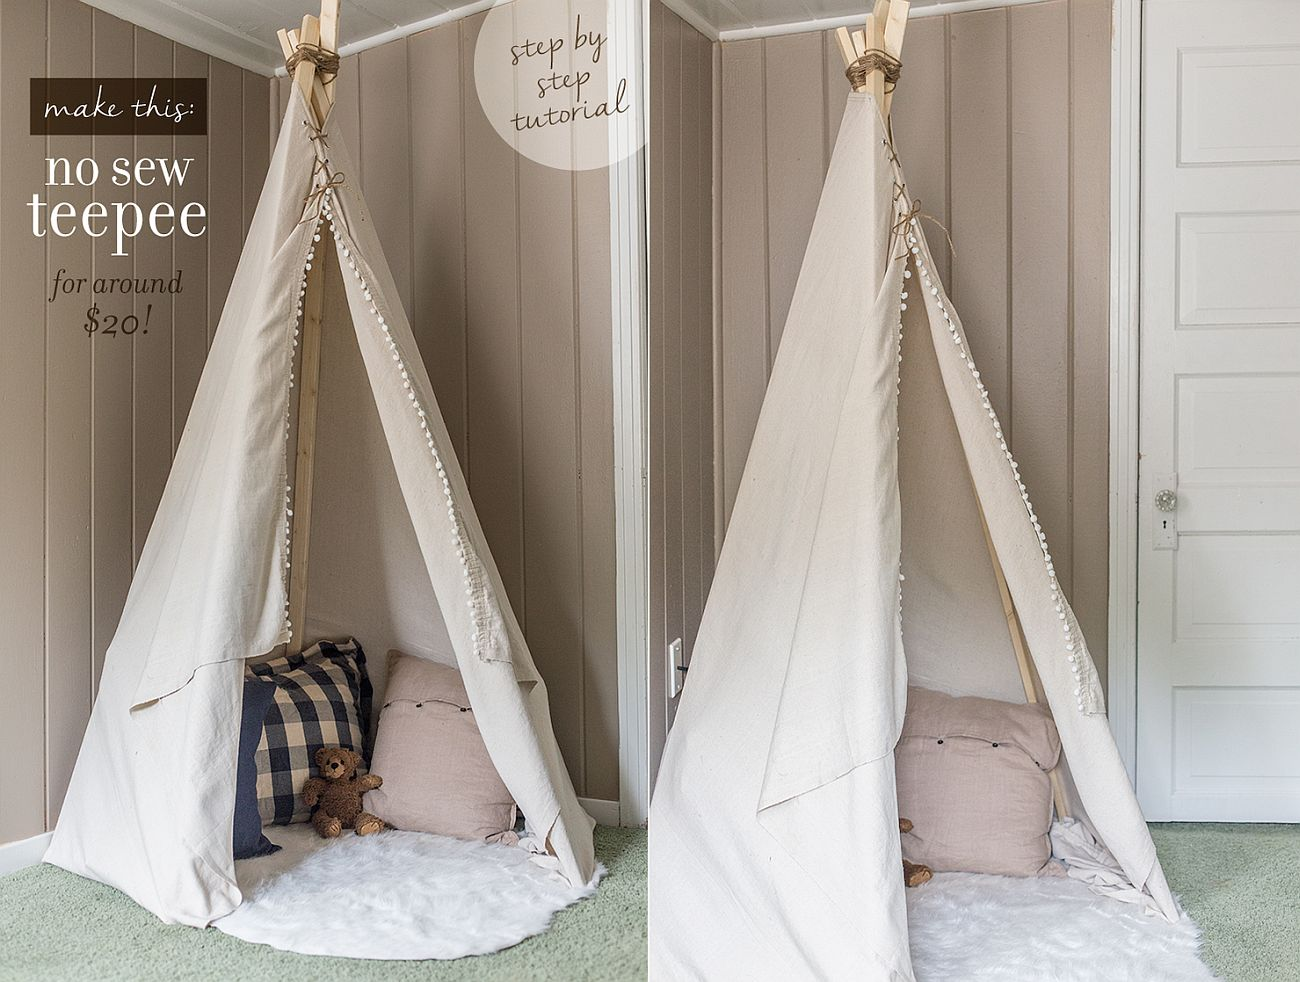 DIY Dropcloth Teepee built for just $20